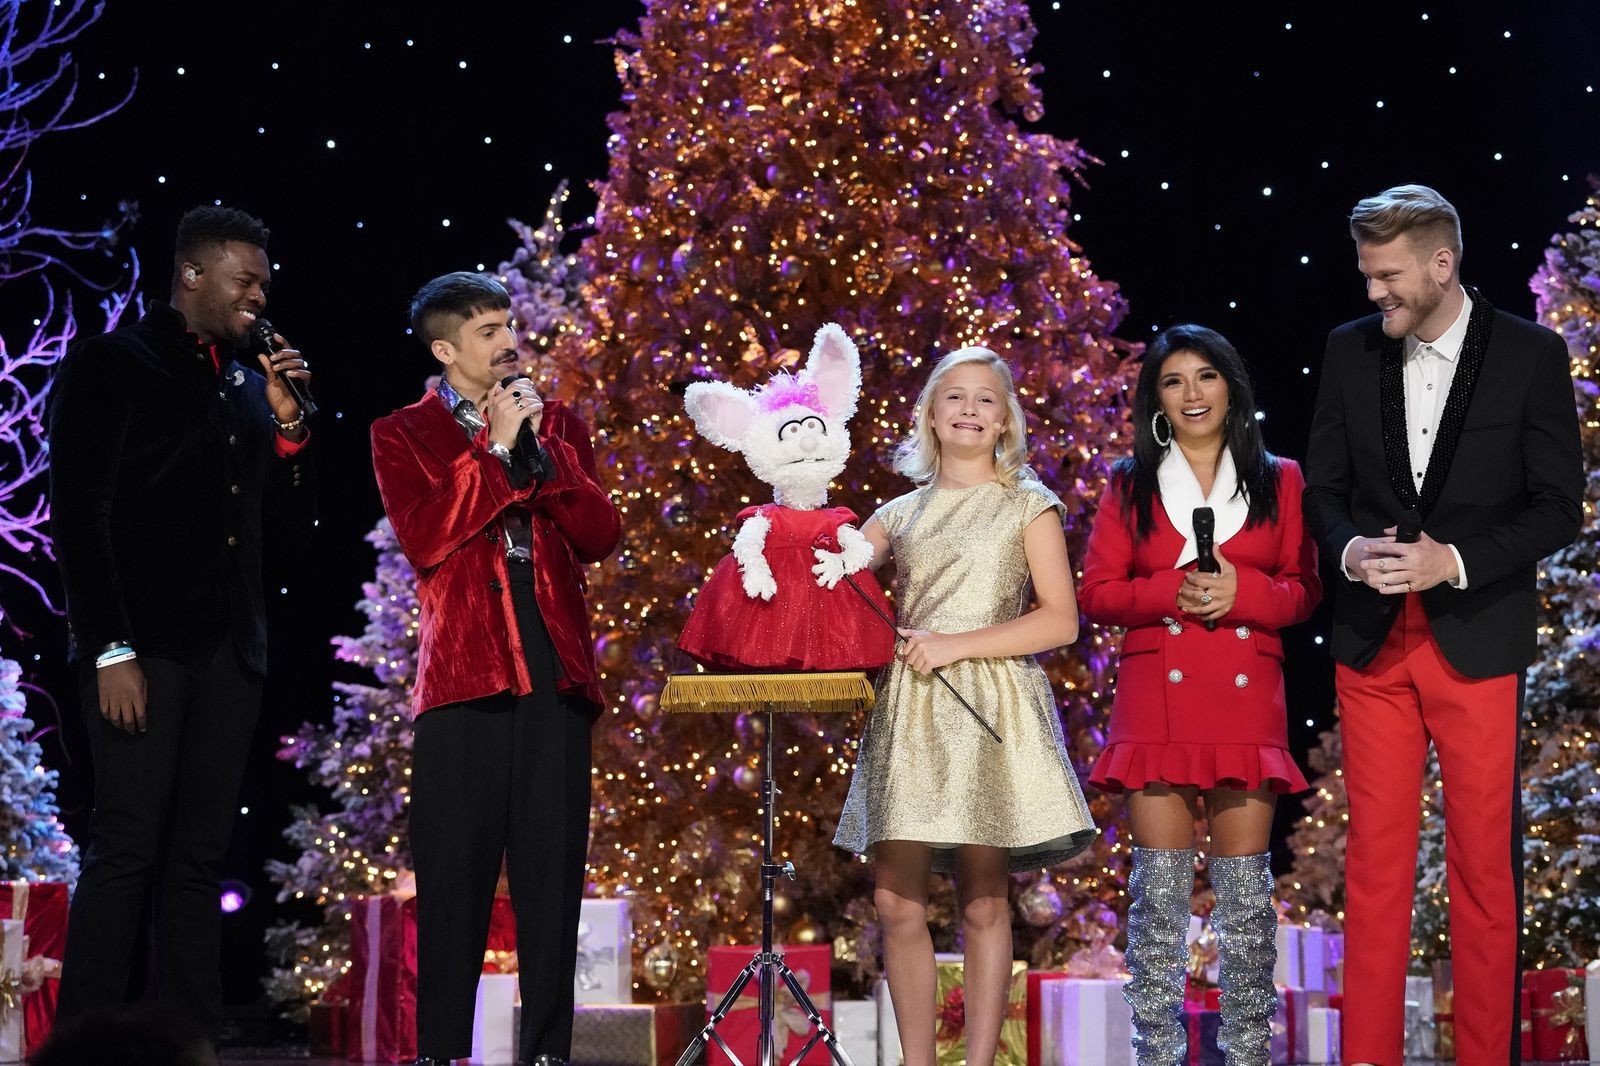 Americas Got Talent Christmas.America S Got Talent Winner Darci Lynne Farmer To Star In Nbc